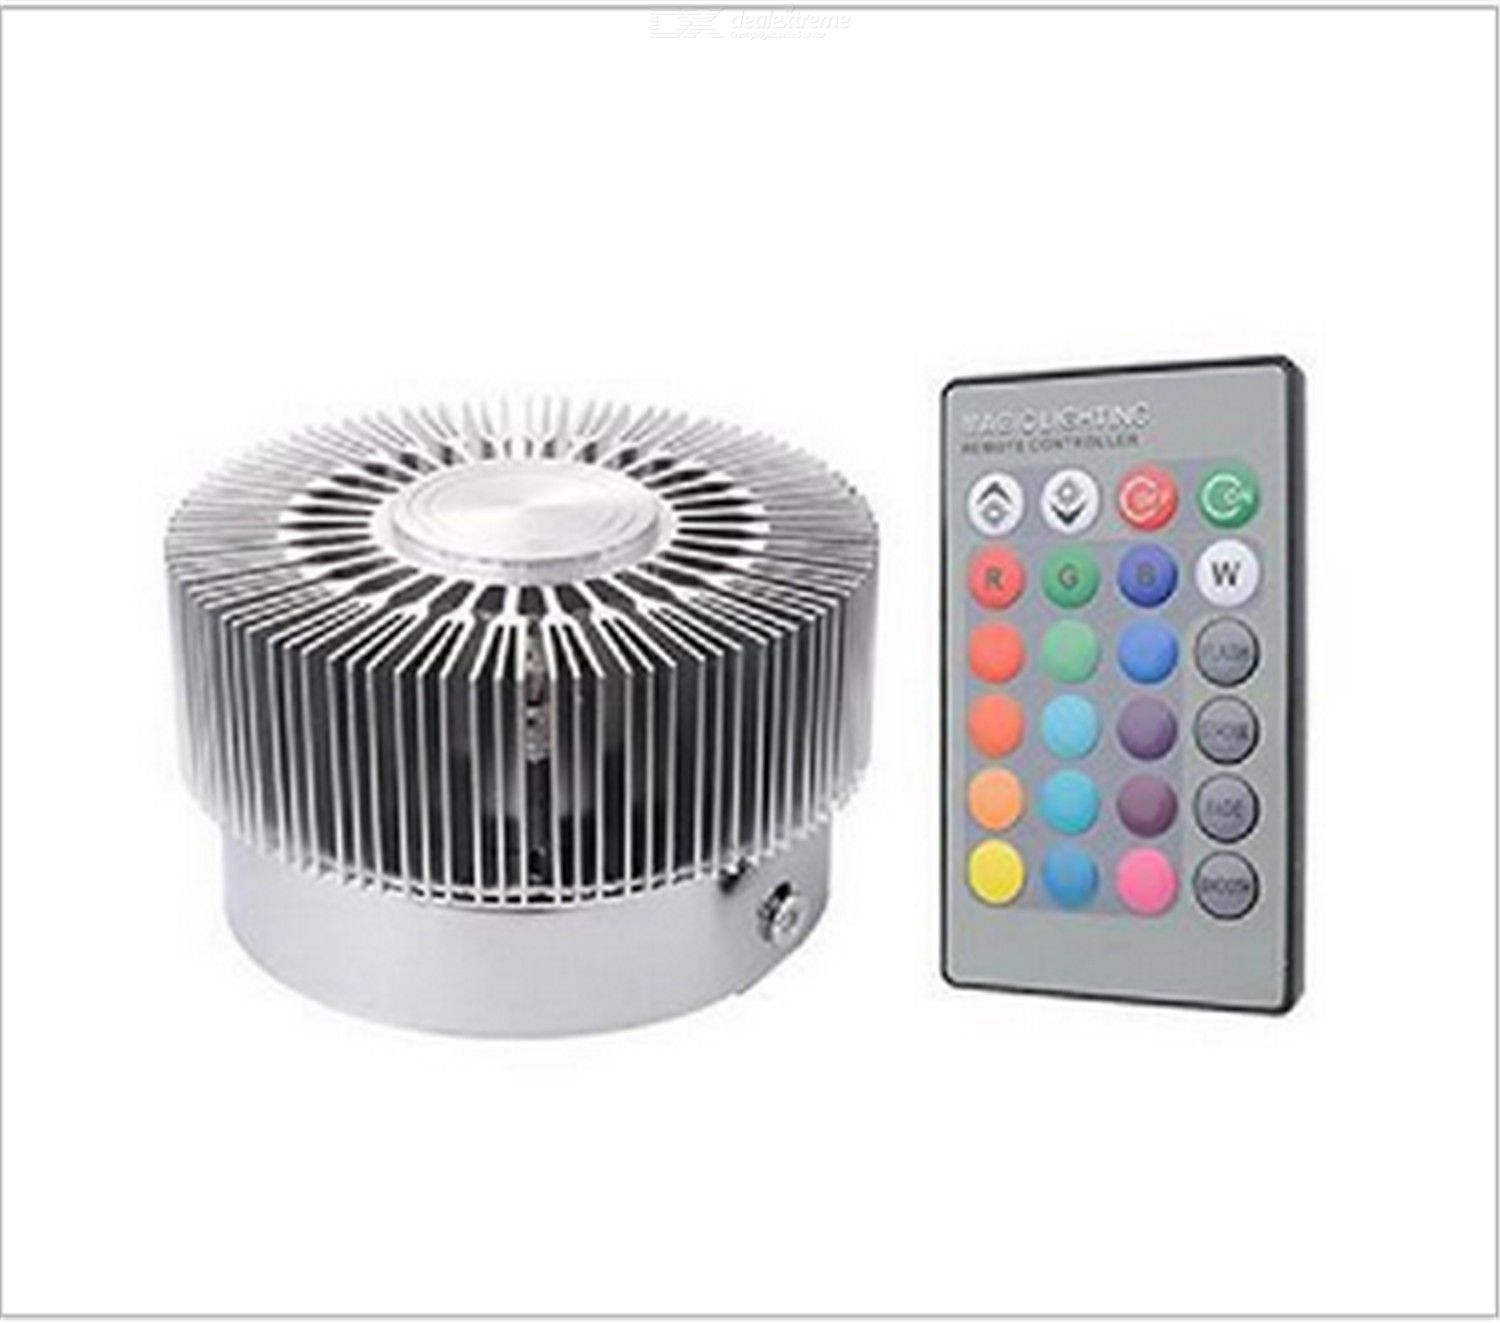 Led sunflower wall lamp modern simple colorful wall lamp with remote control